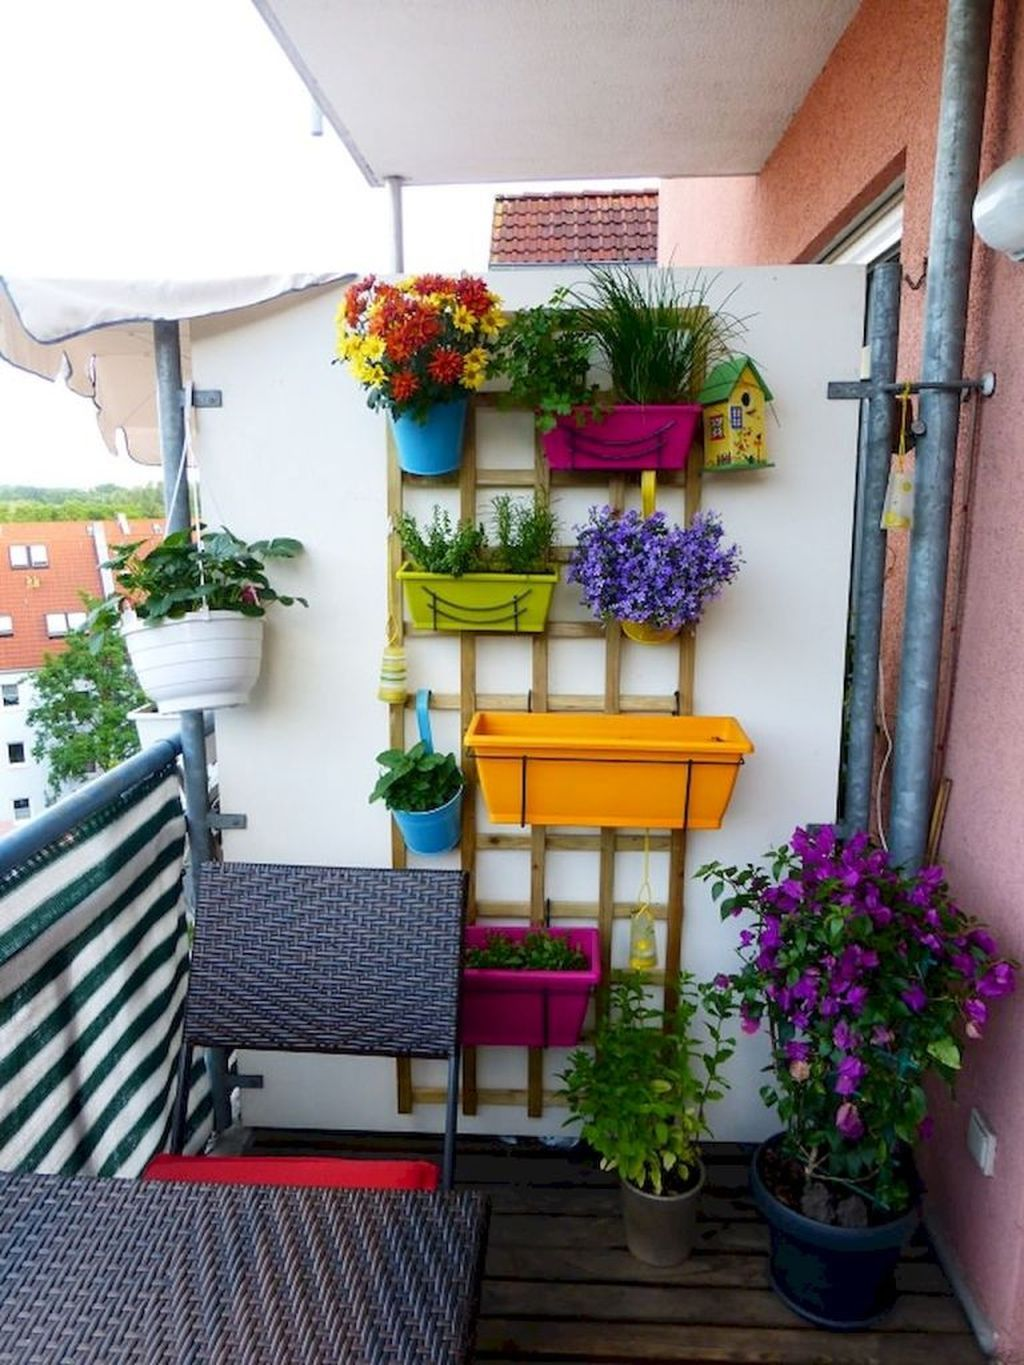 Affordable Decorating Ideas For Living Rooms: Awesome 45 Affordable Small Apartment Balcony Decorating